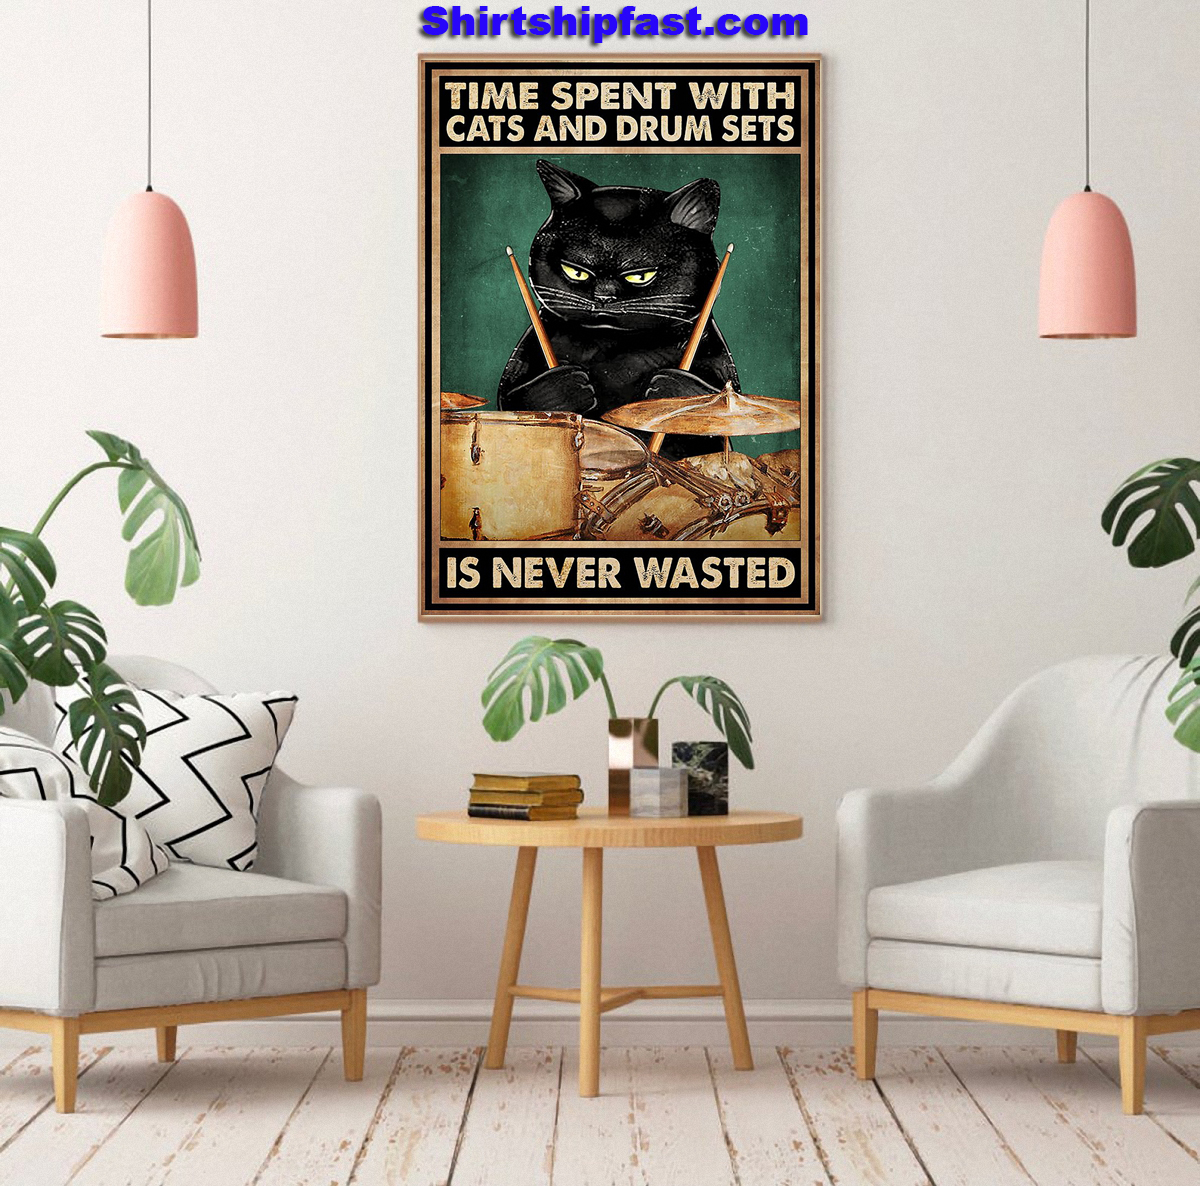 Black cat Time spent with cats and drum sets is never wasted poster - Picture 1